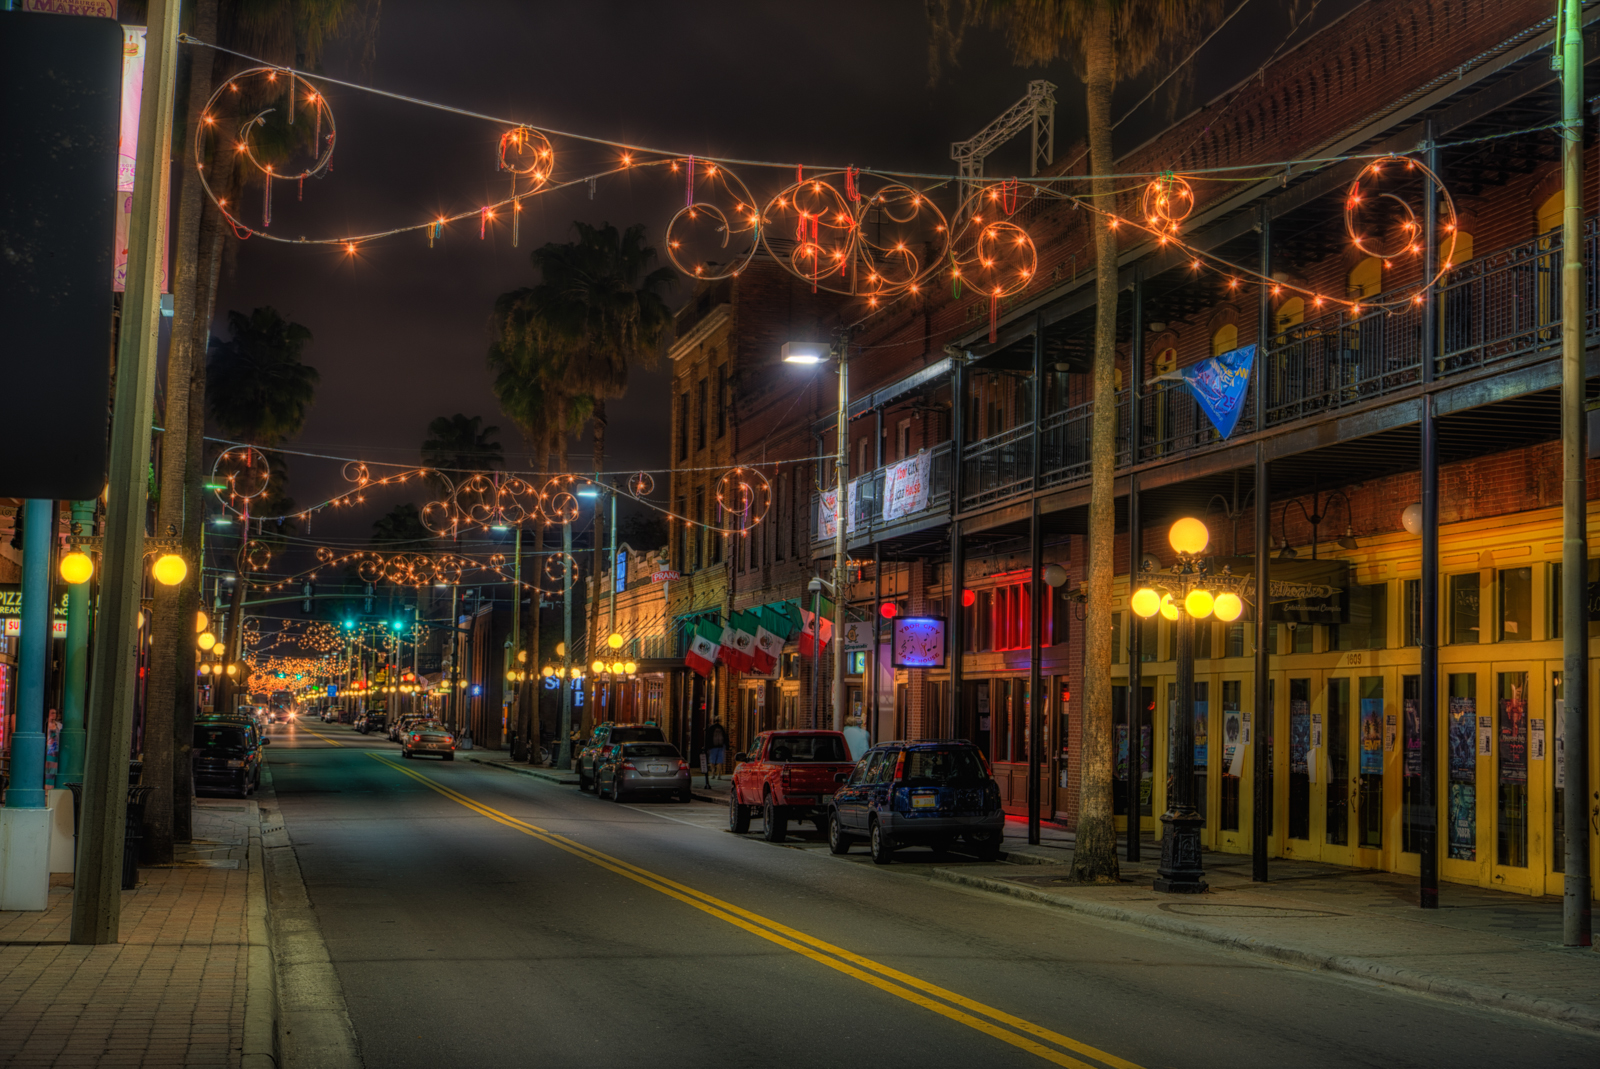 7th Avenue Ybor City